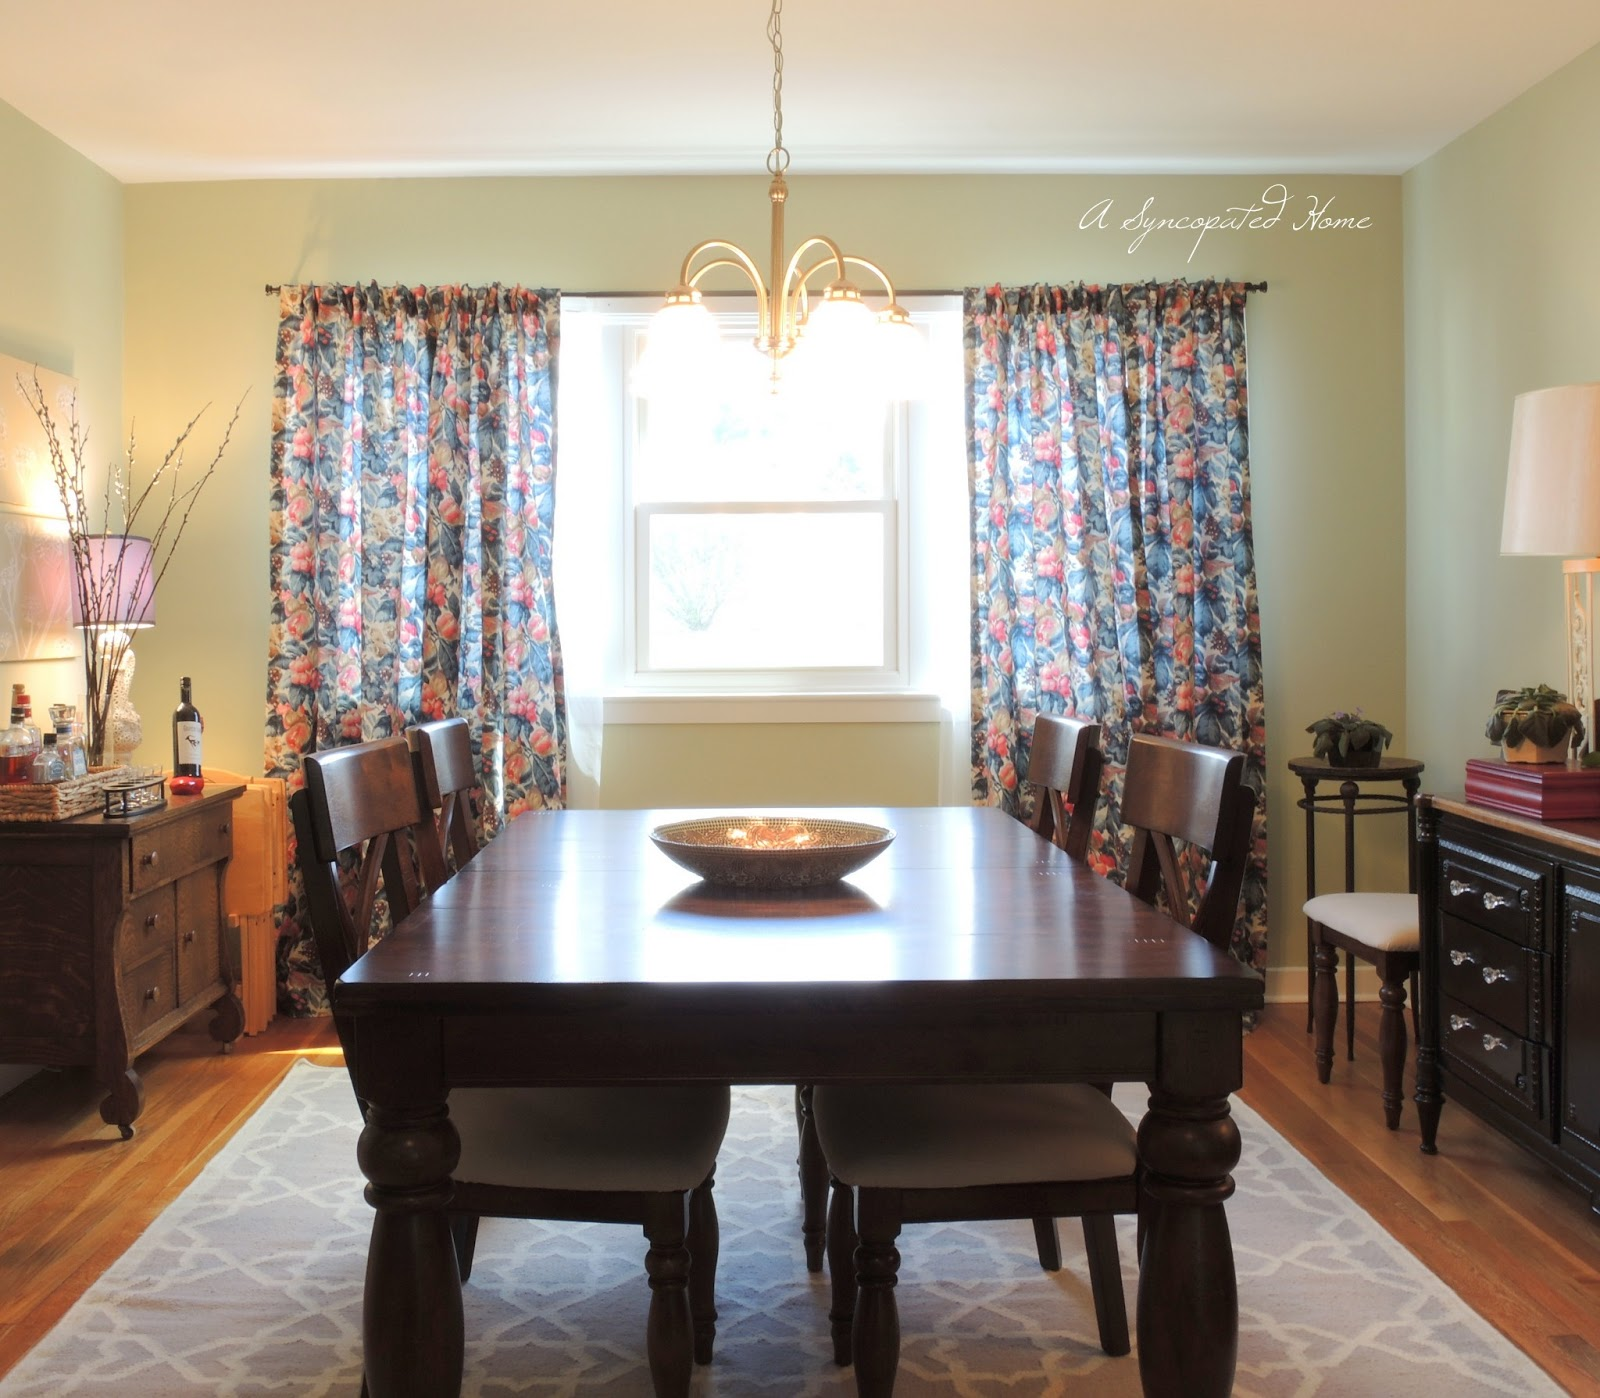 Ive Already Shared With You My DIY Ombre Watercolor Art And Invitations Today Im Going To Share Dining Room Curtains